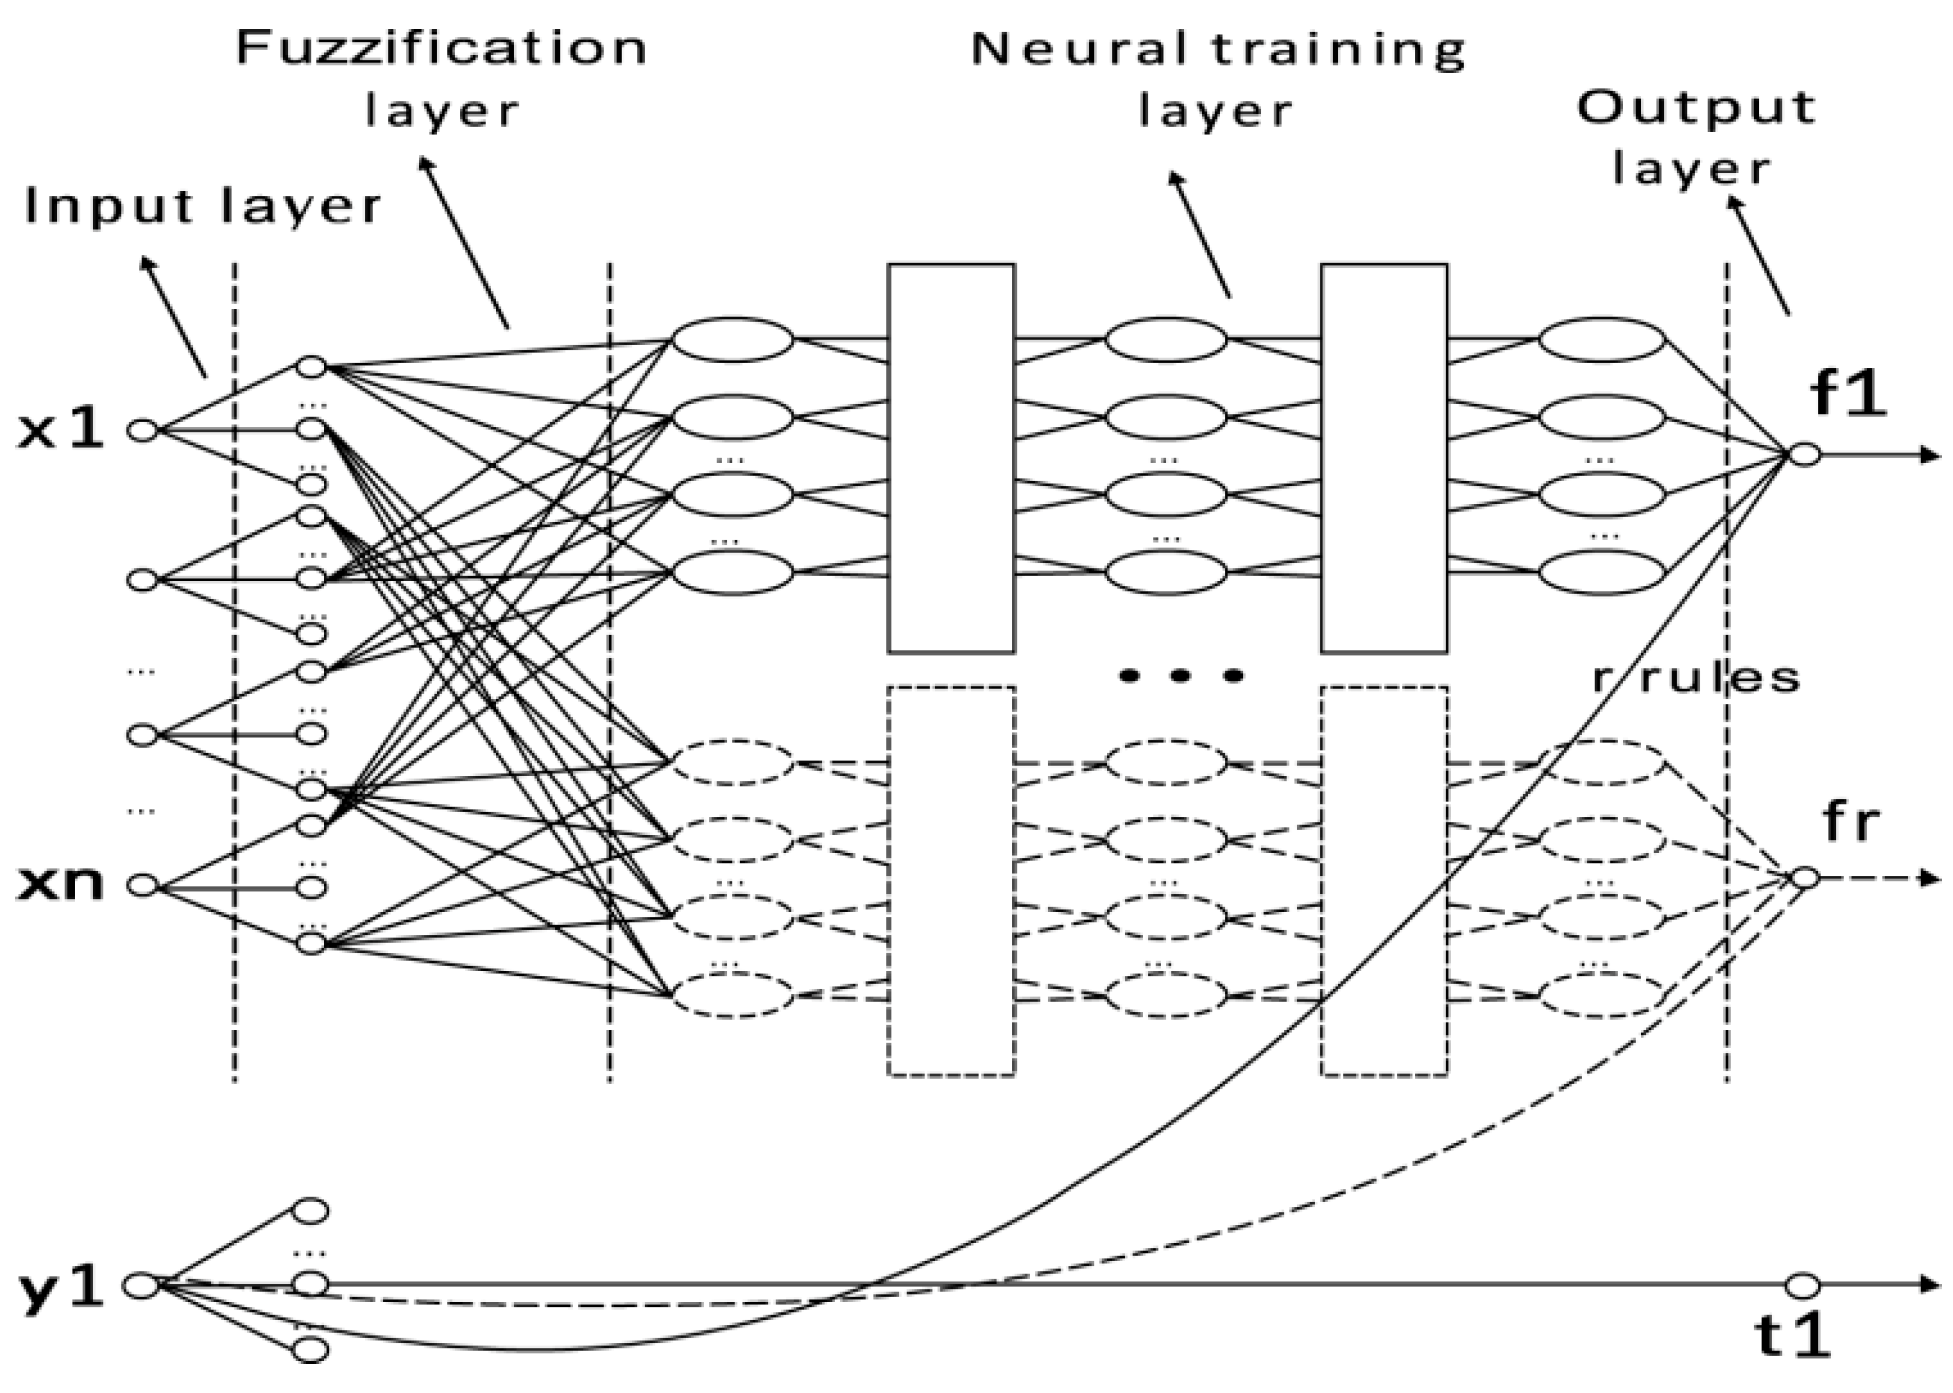 Atmosphere   Free Full-Text   Neural Fuzzy Inference System-Based